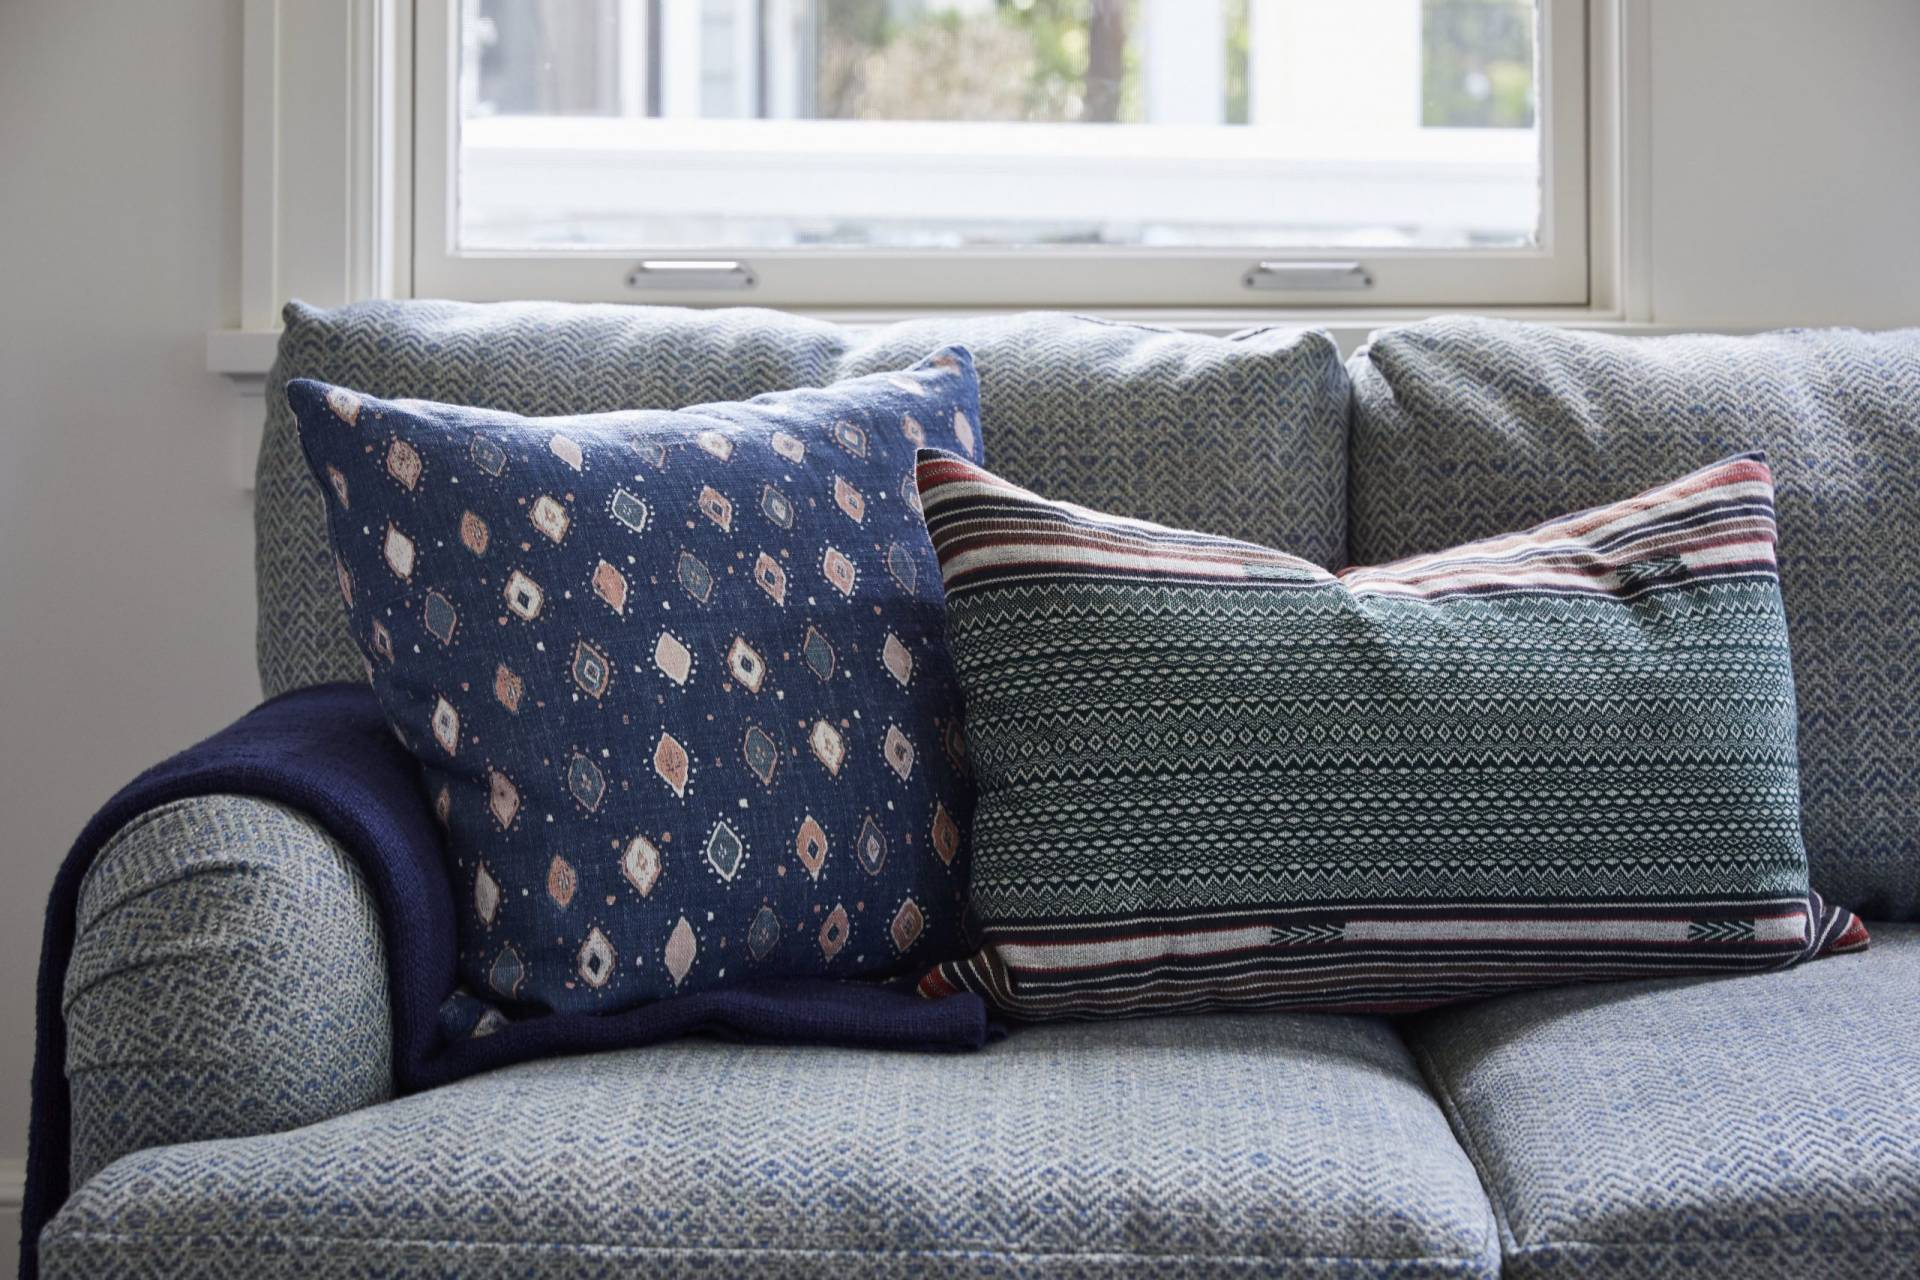 Blue herringbone sofa with patterned throw pillows